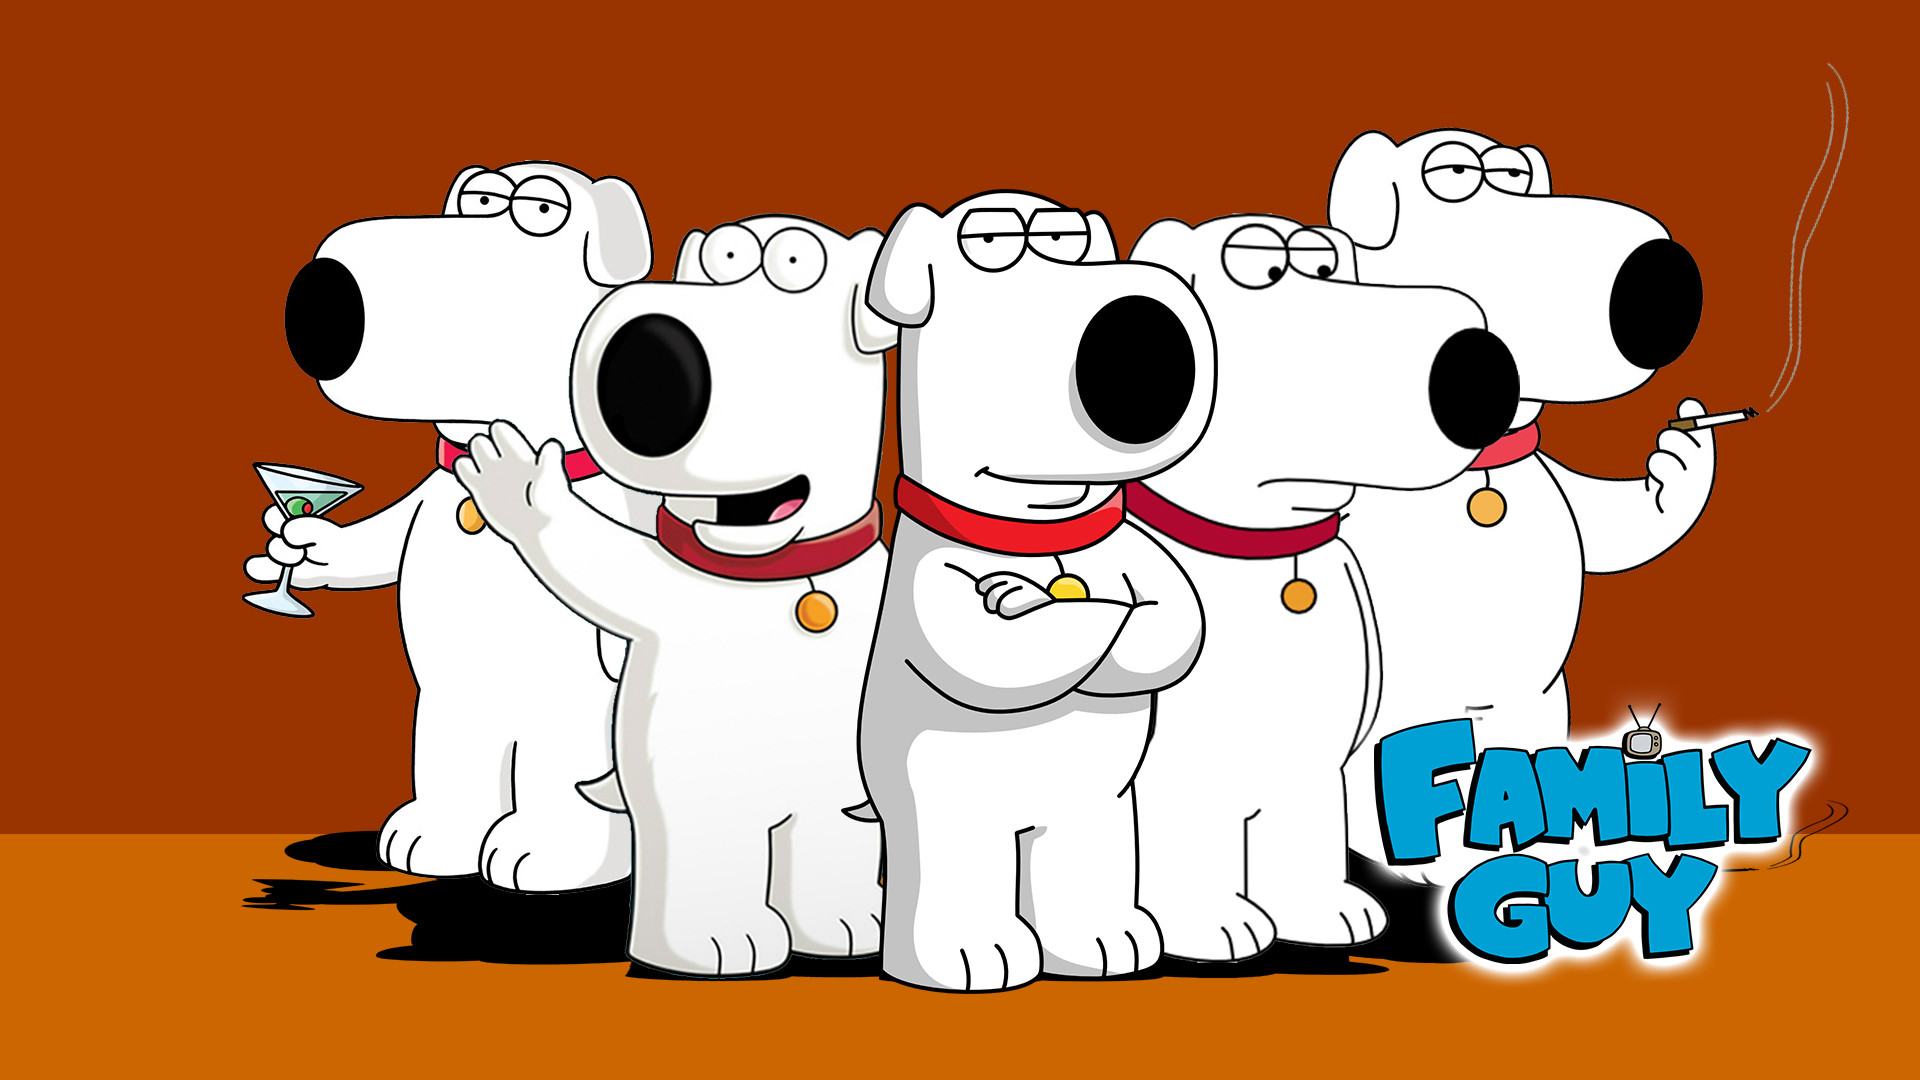 Brian griffin Family Guy Wallpaper HD #2548